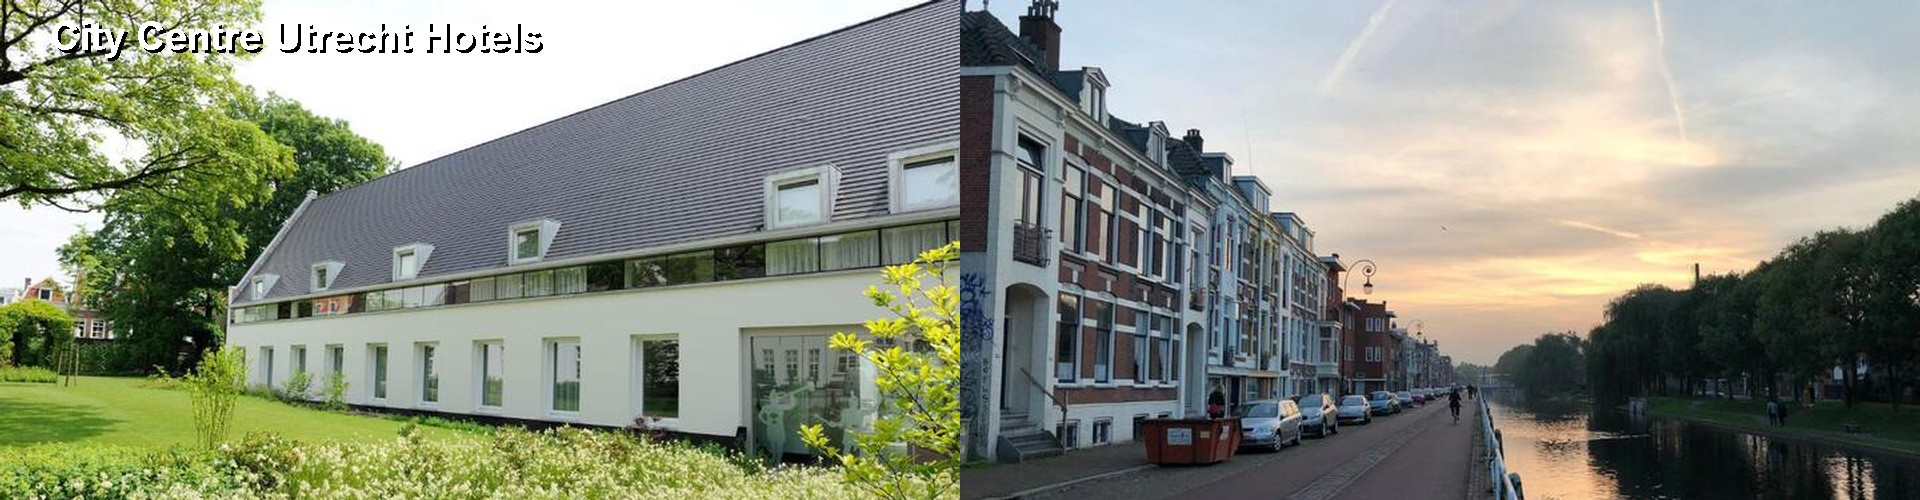 5 Best Hotels near City Centre Utrecht